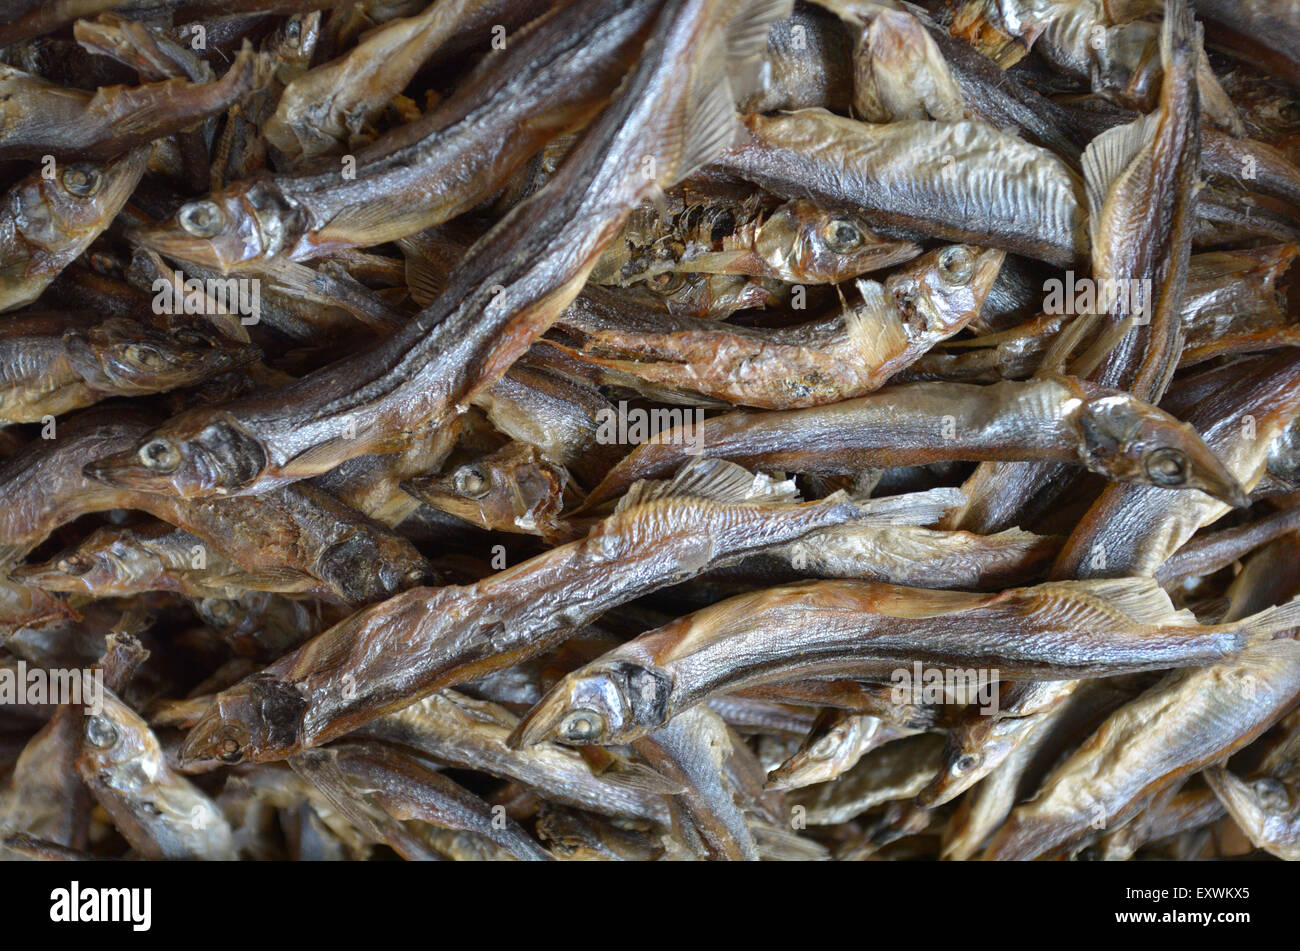 Dried small anchovies fish at the market in Chinatown. Food background texture. - Stock Image